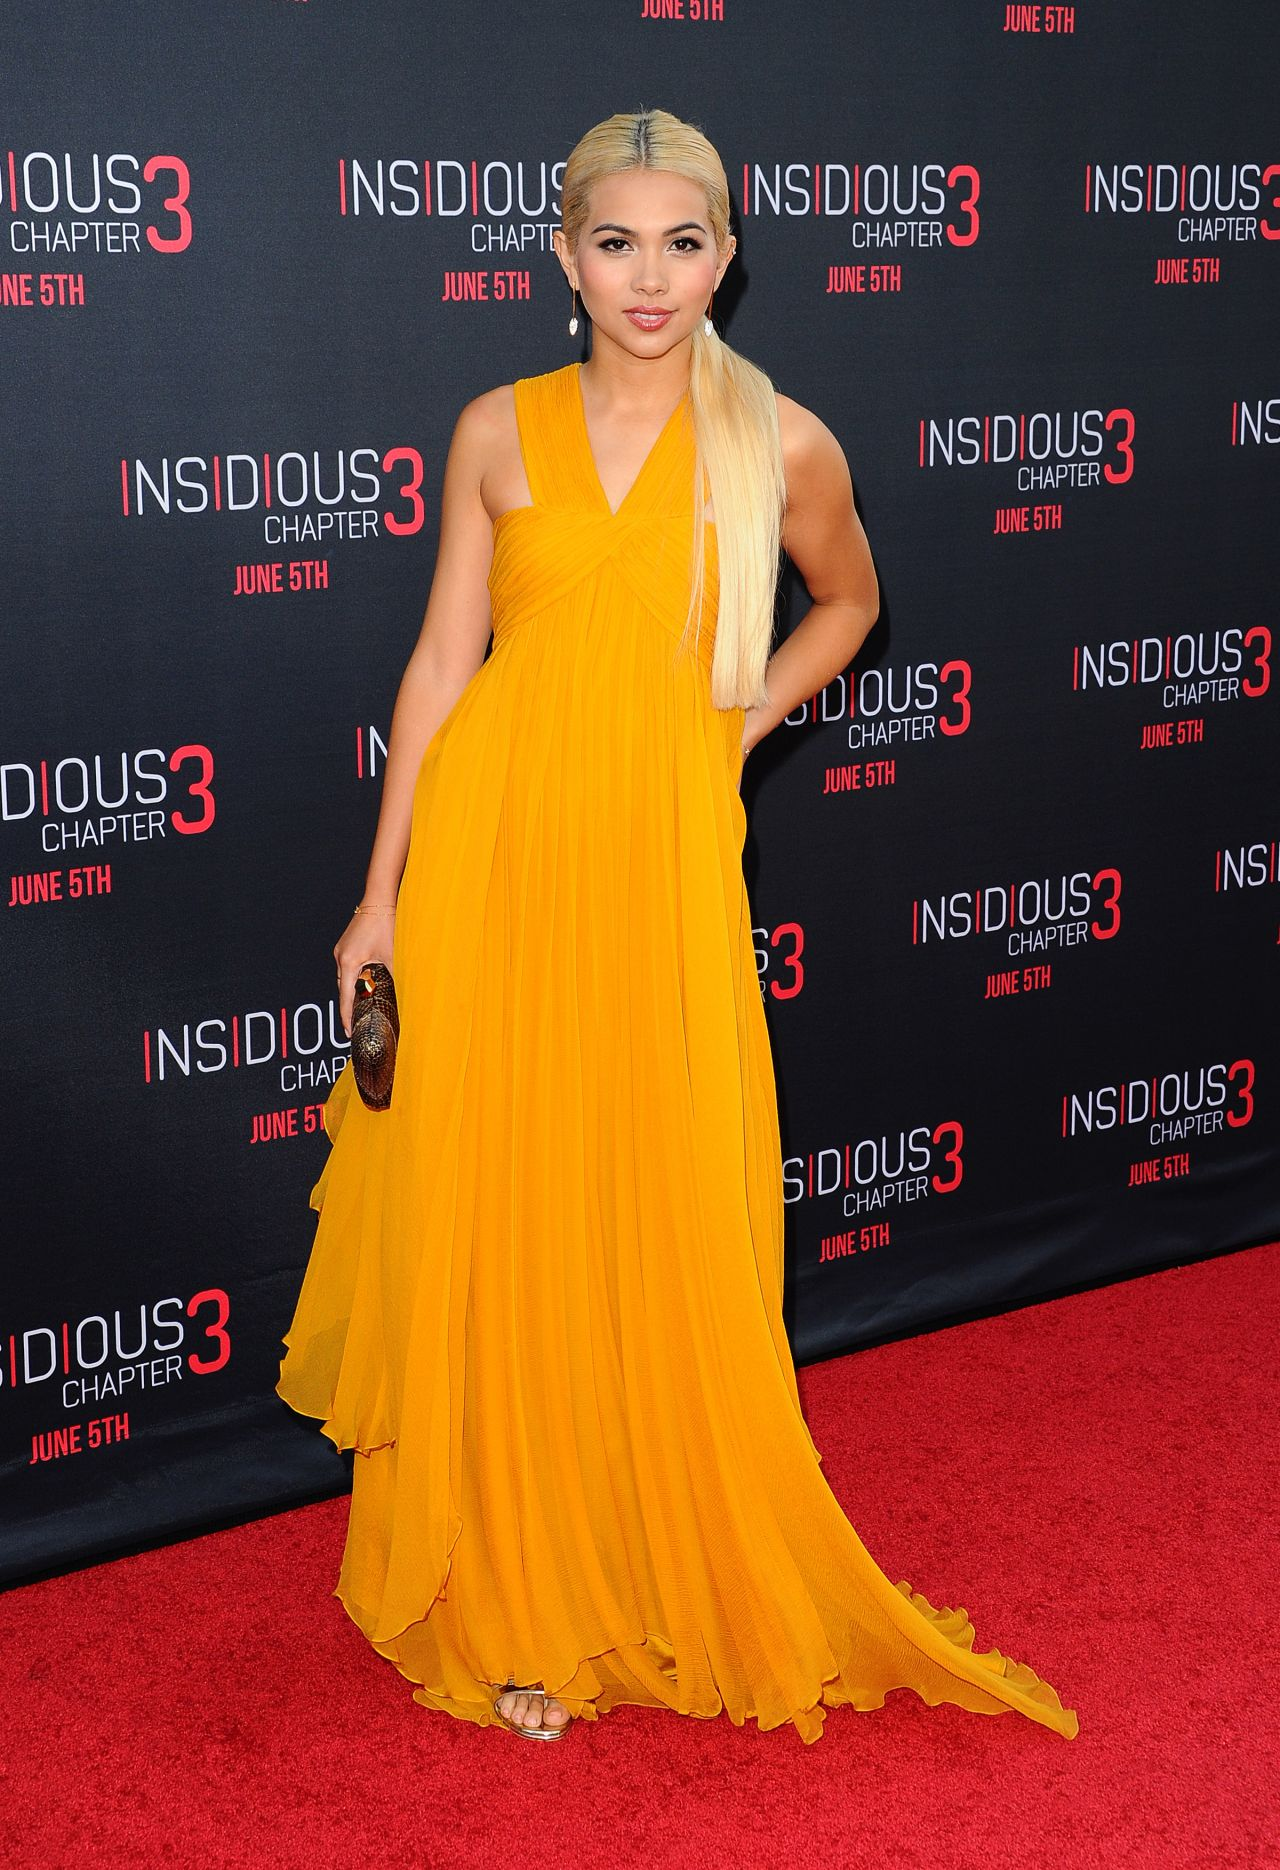 Insidious Chapter 3 Quotes About Love : Related Pictures Hayley Kiyoko Hair Pictures to pin on Pinterest